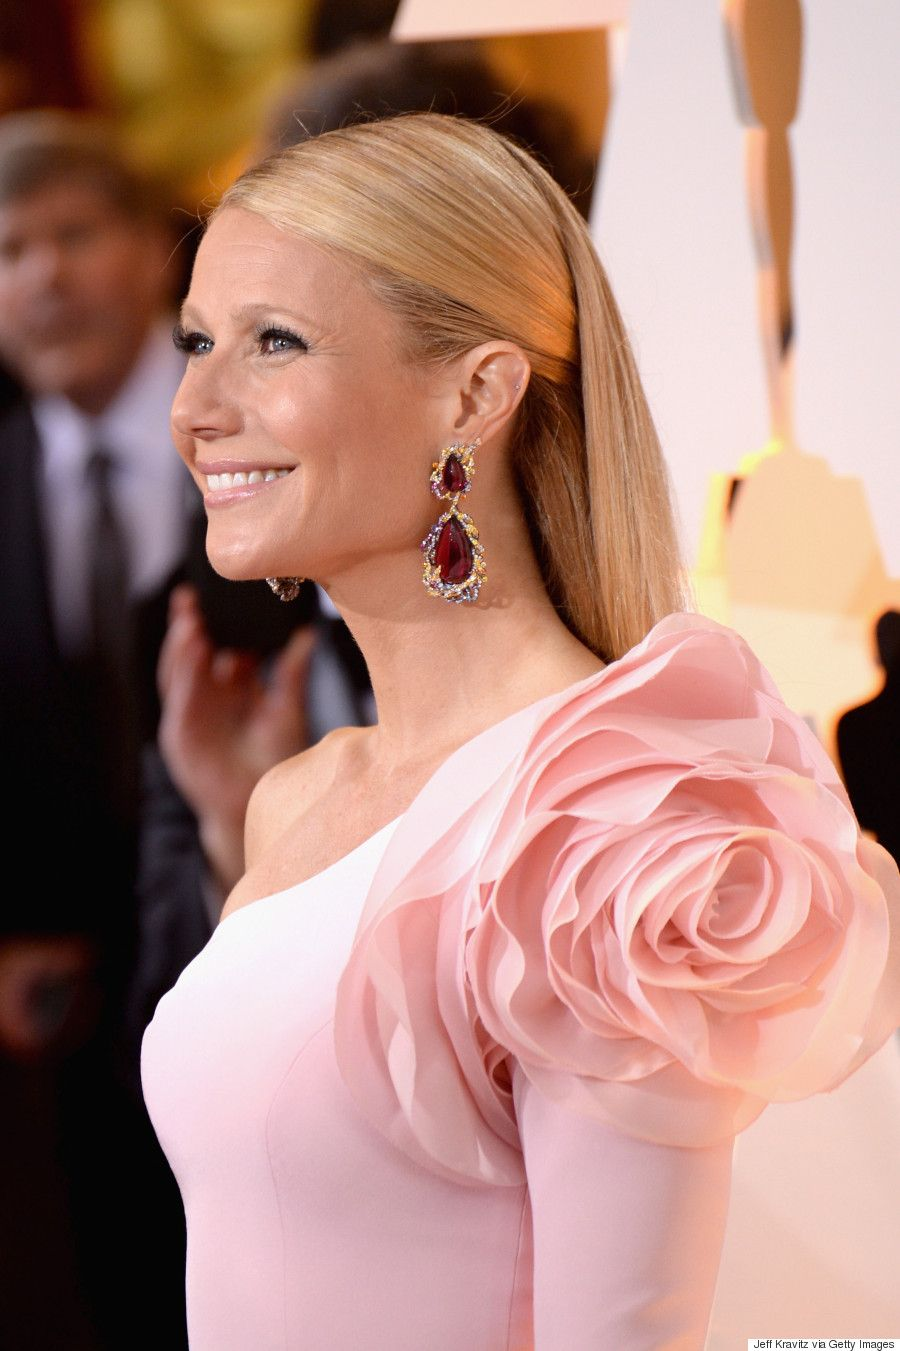 Brinco de rubi gwyneth paltrow